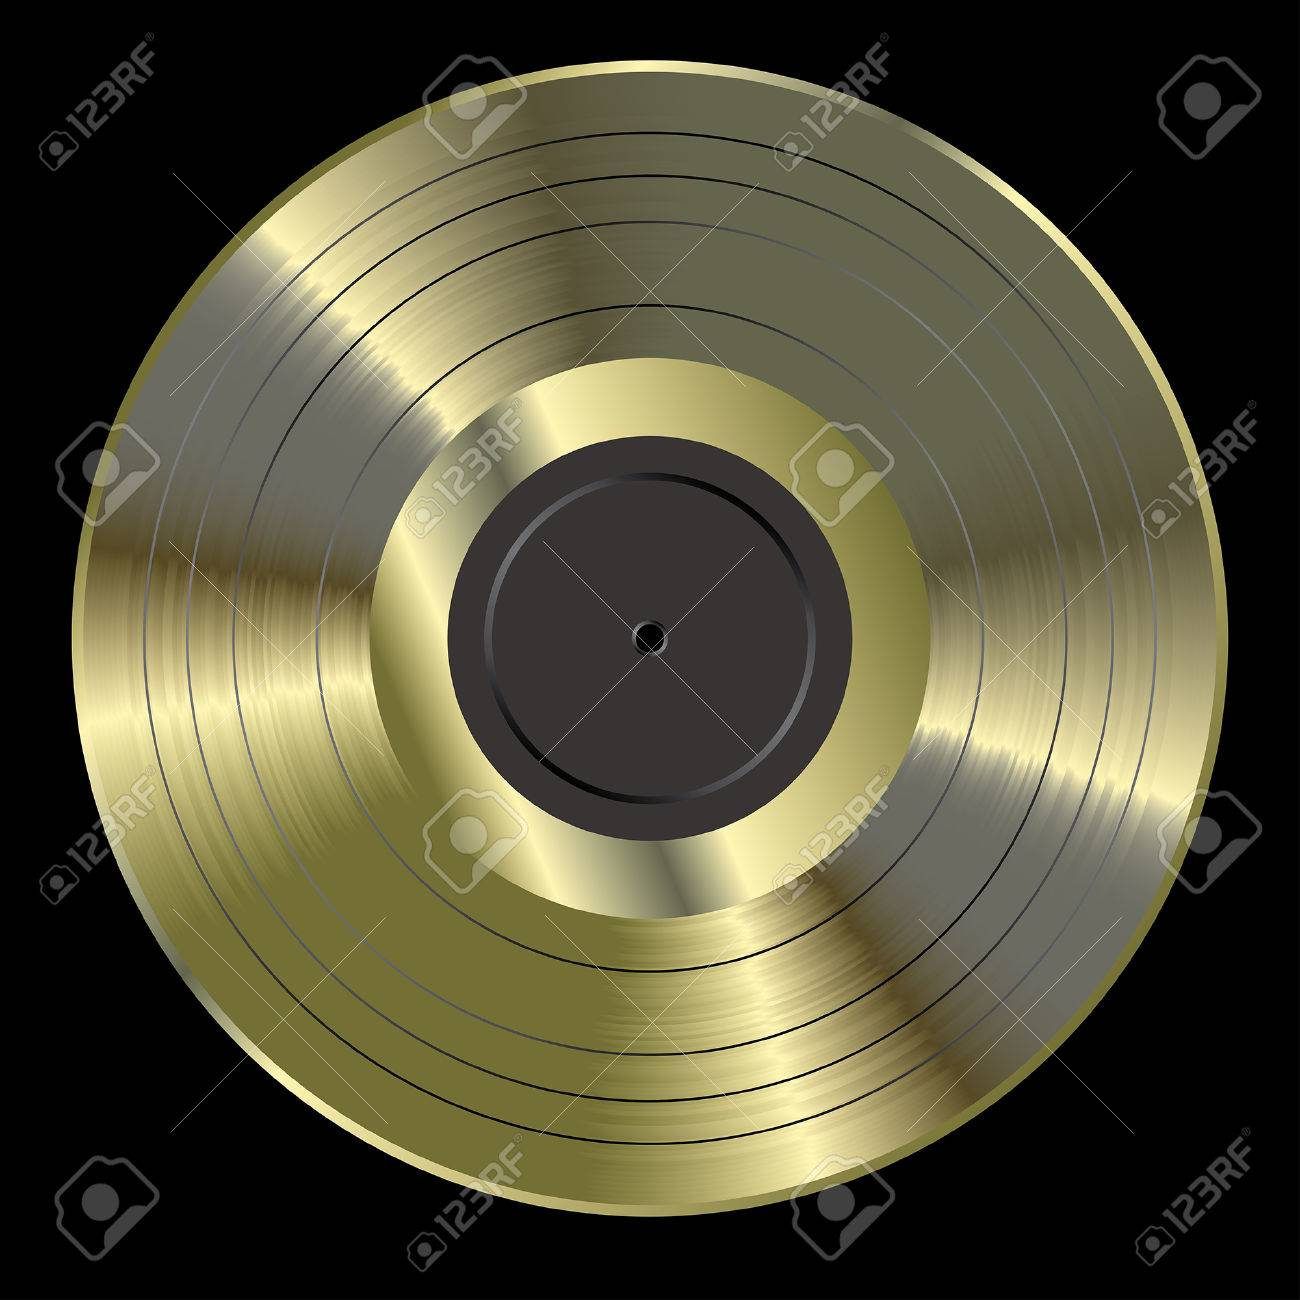 vector realistic illustration of the blank golden LP - 37633898